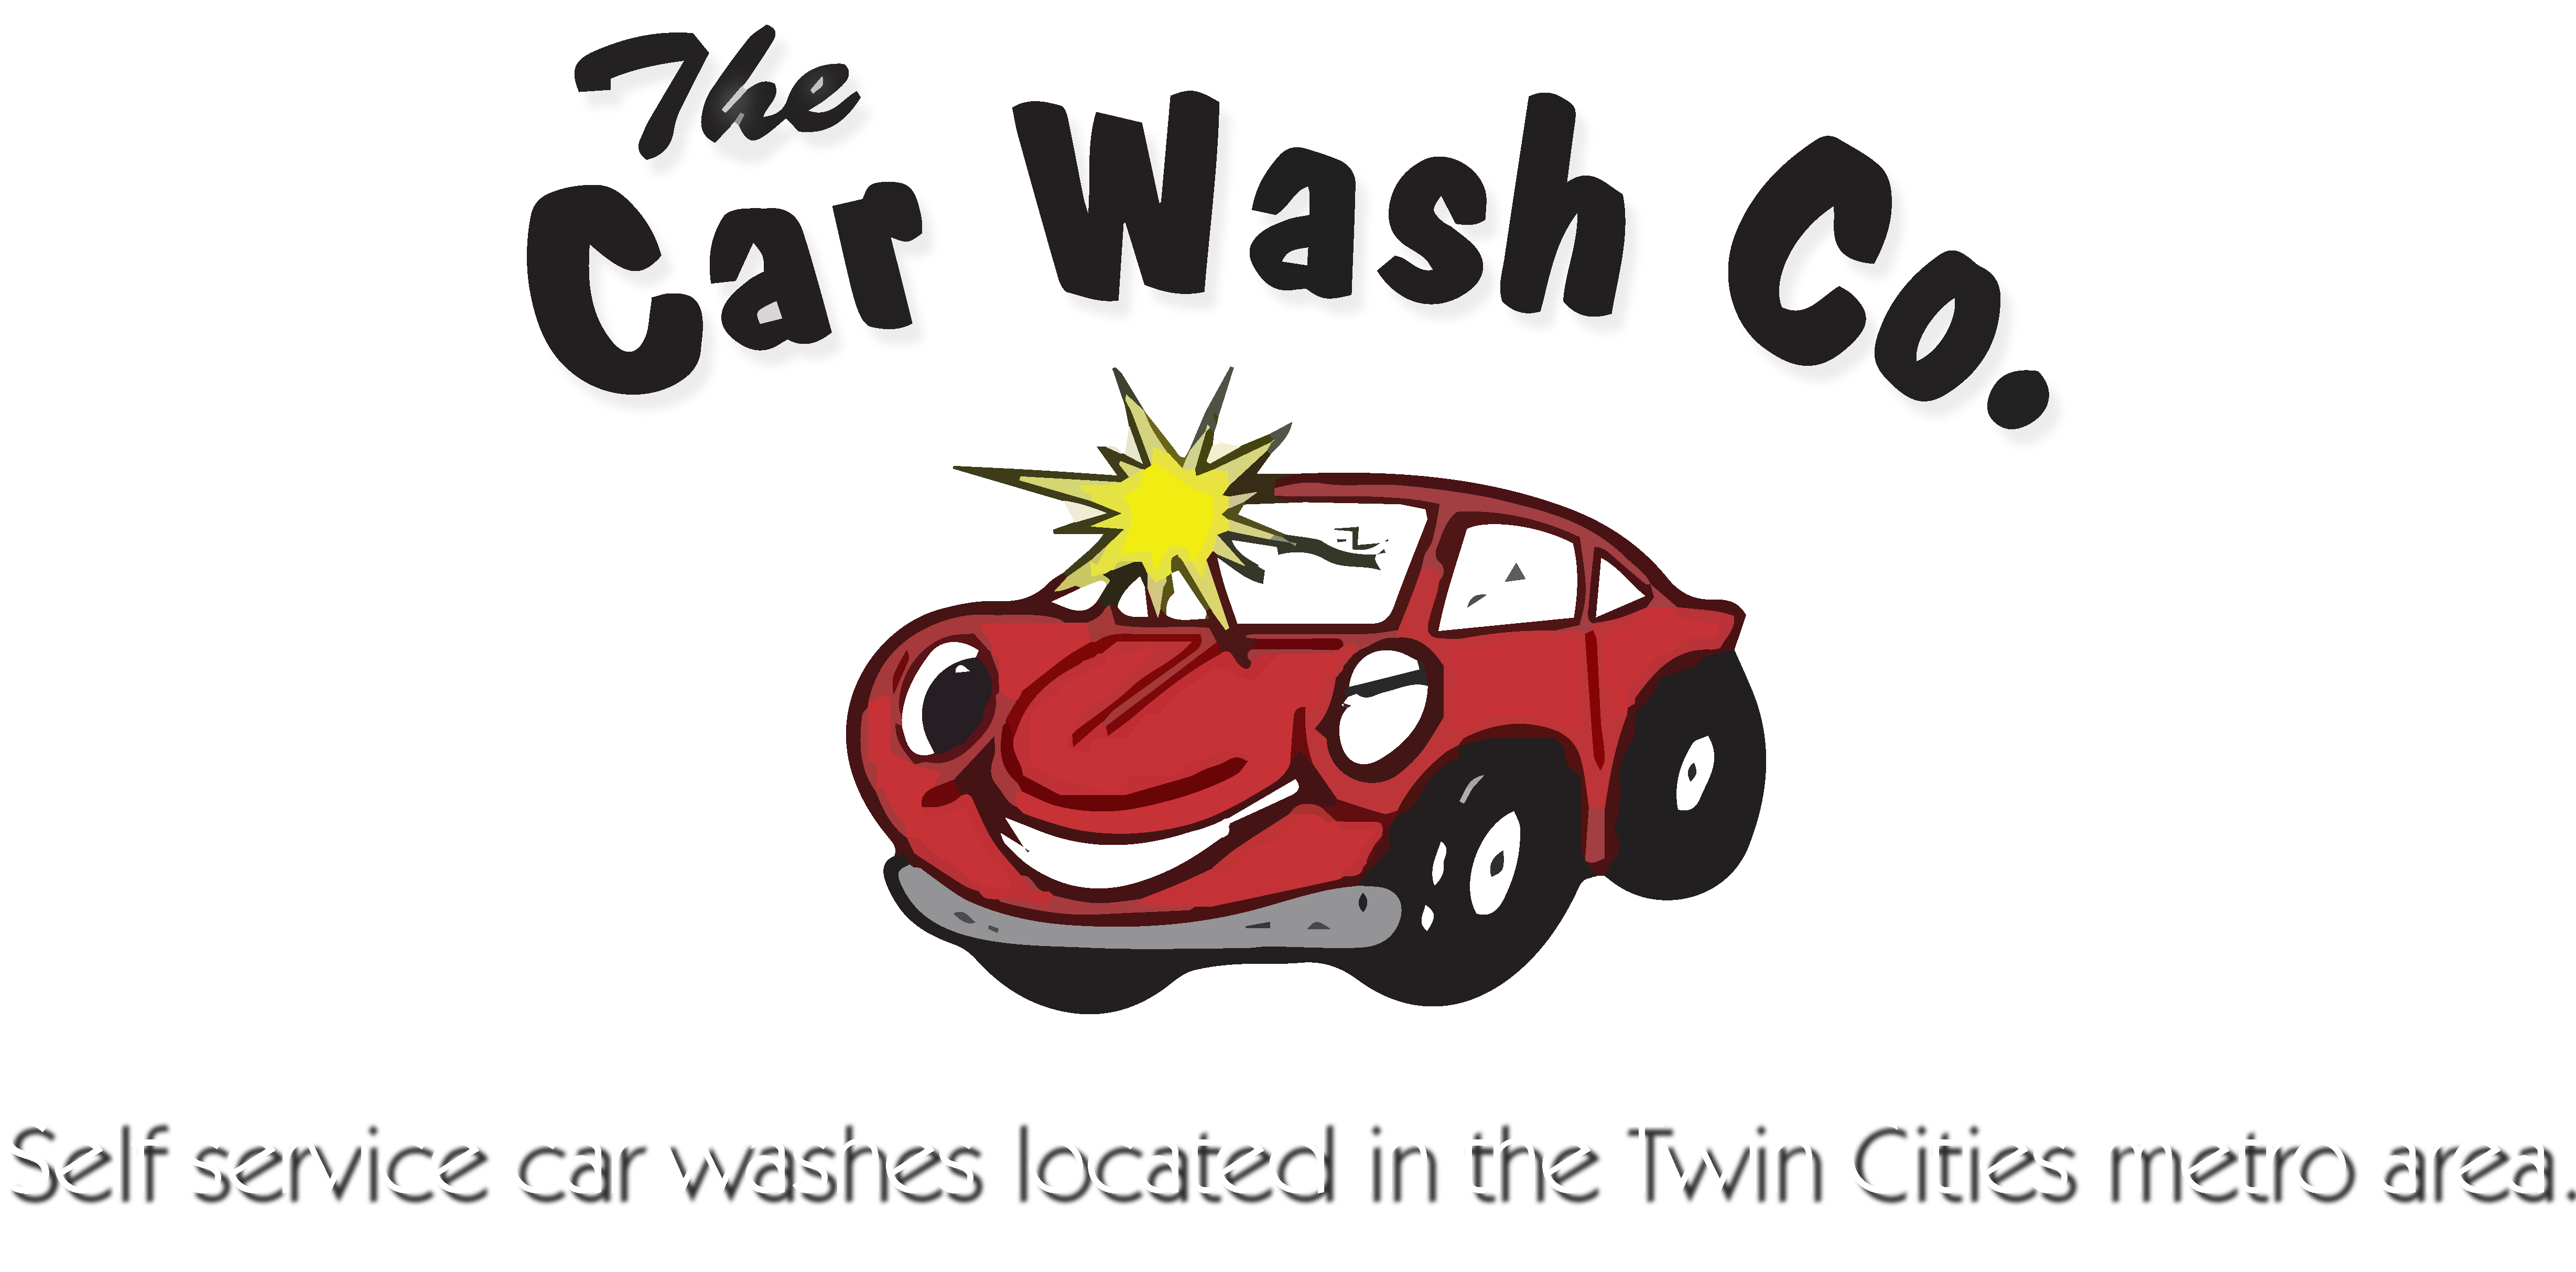 Car wash graphics clipart graphic free download The Car Wash Co. – Self-service car washes serving the Minnesota Metro. graphic free download